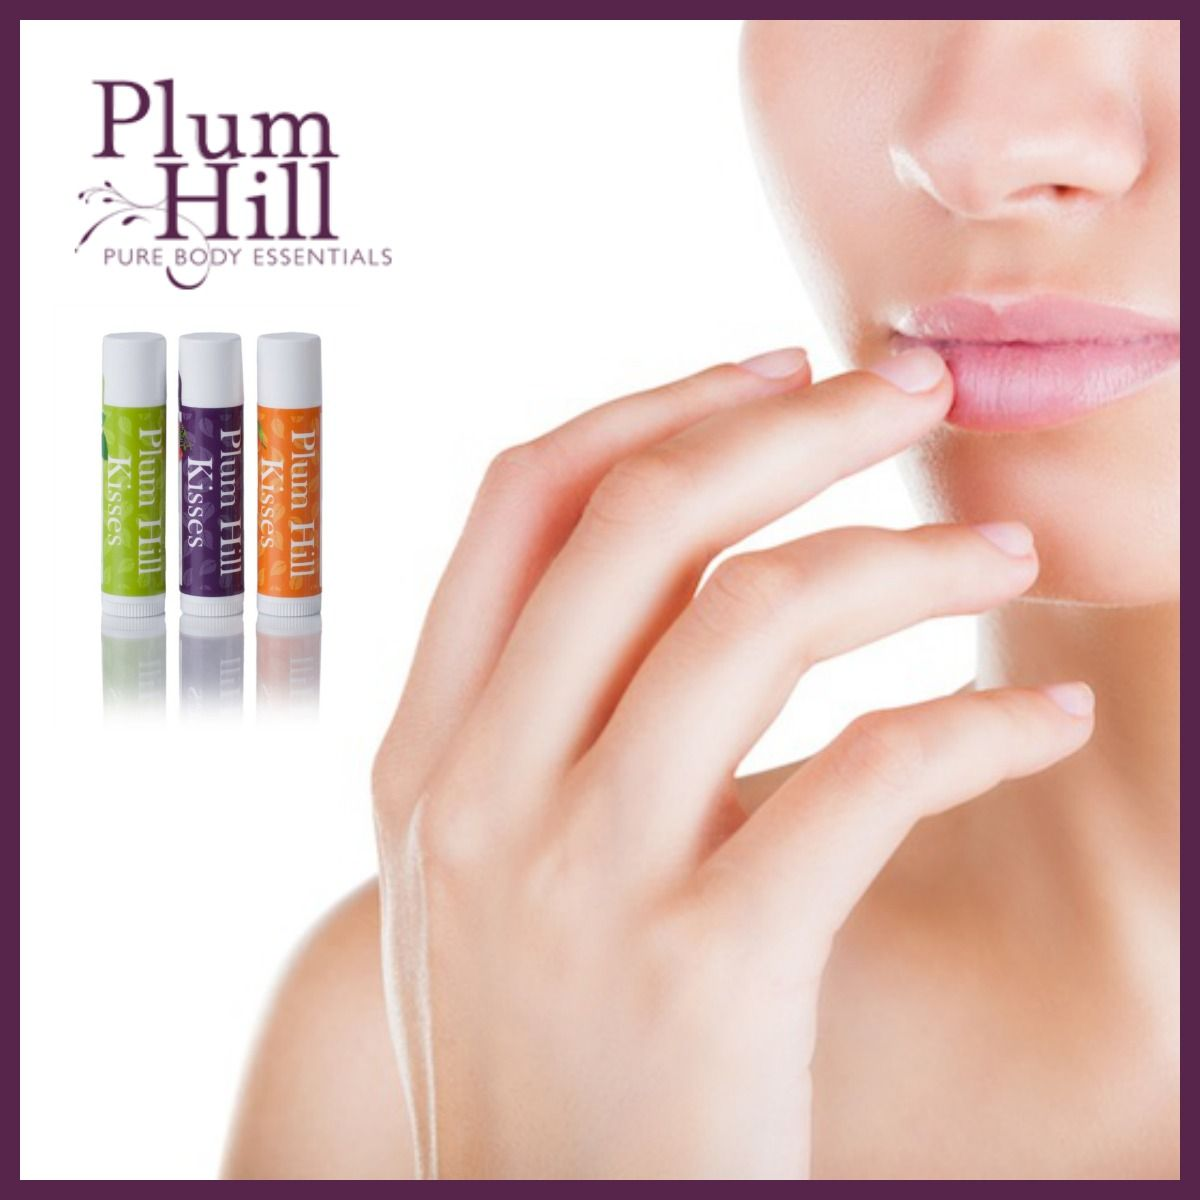 Our Natural Lip Balm Helps Soothe, Dry Cracked And Chapped